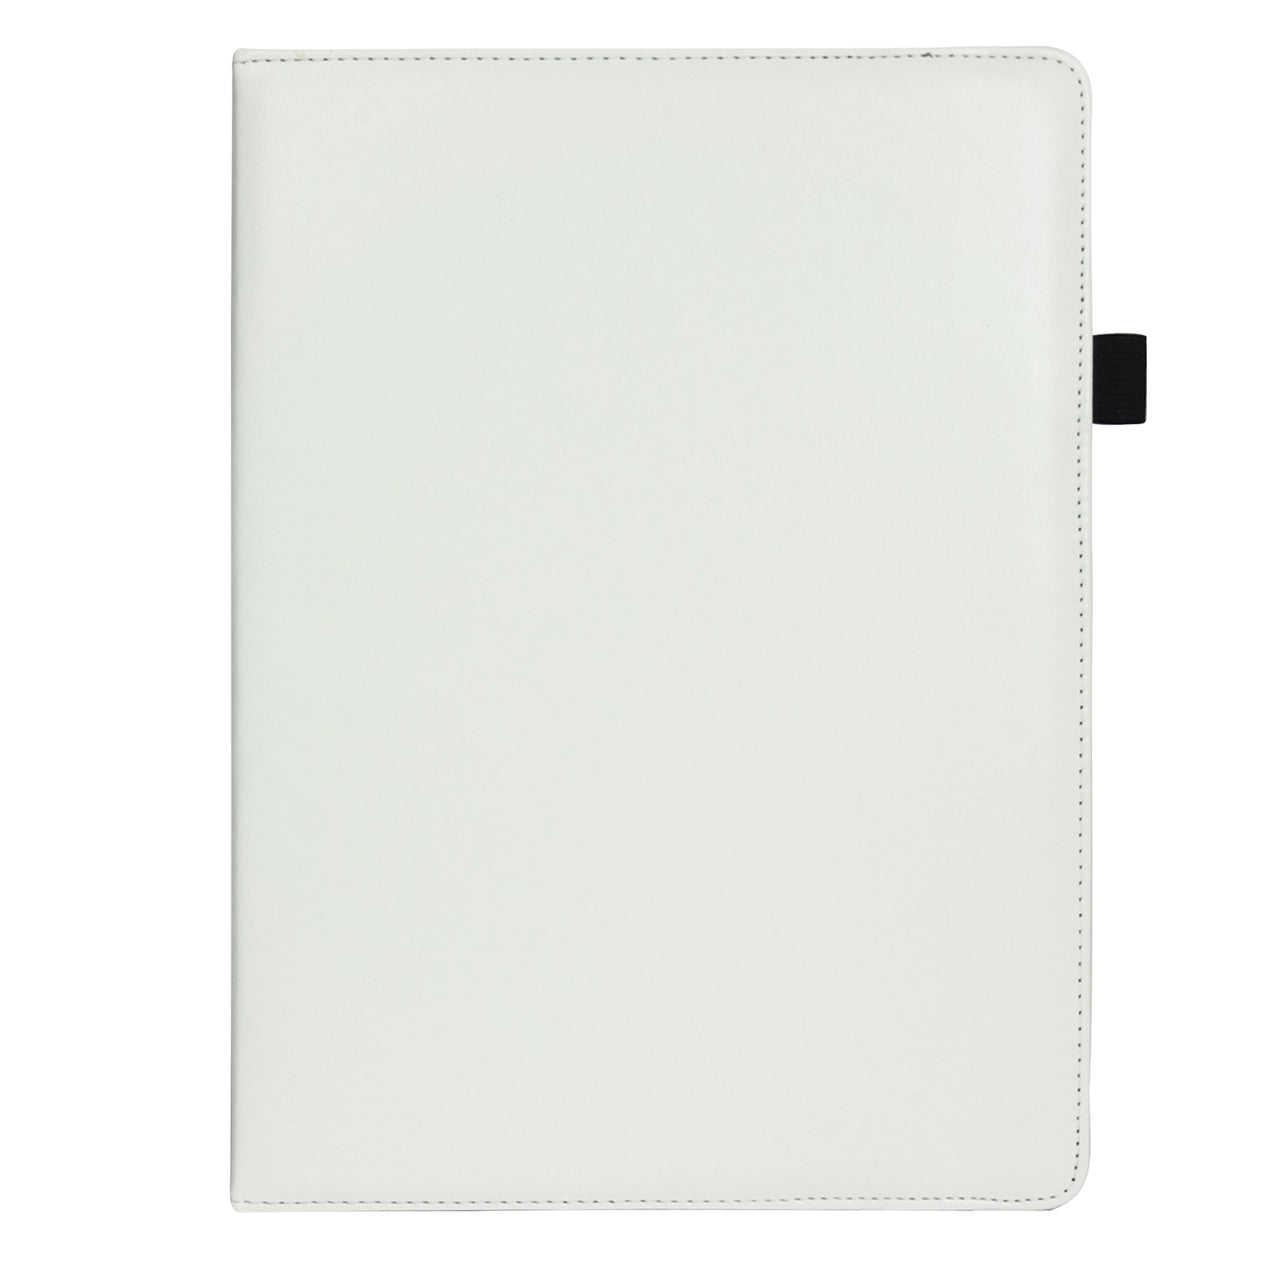 360° Rotating Universal Tablet Case - White